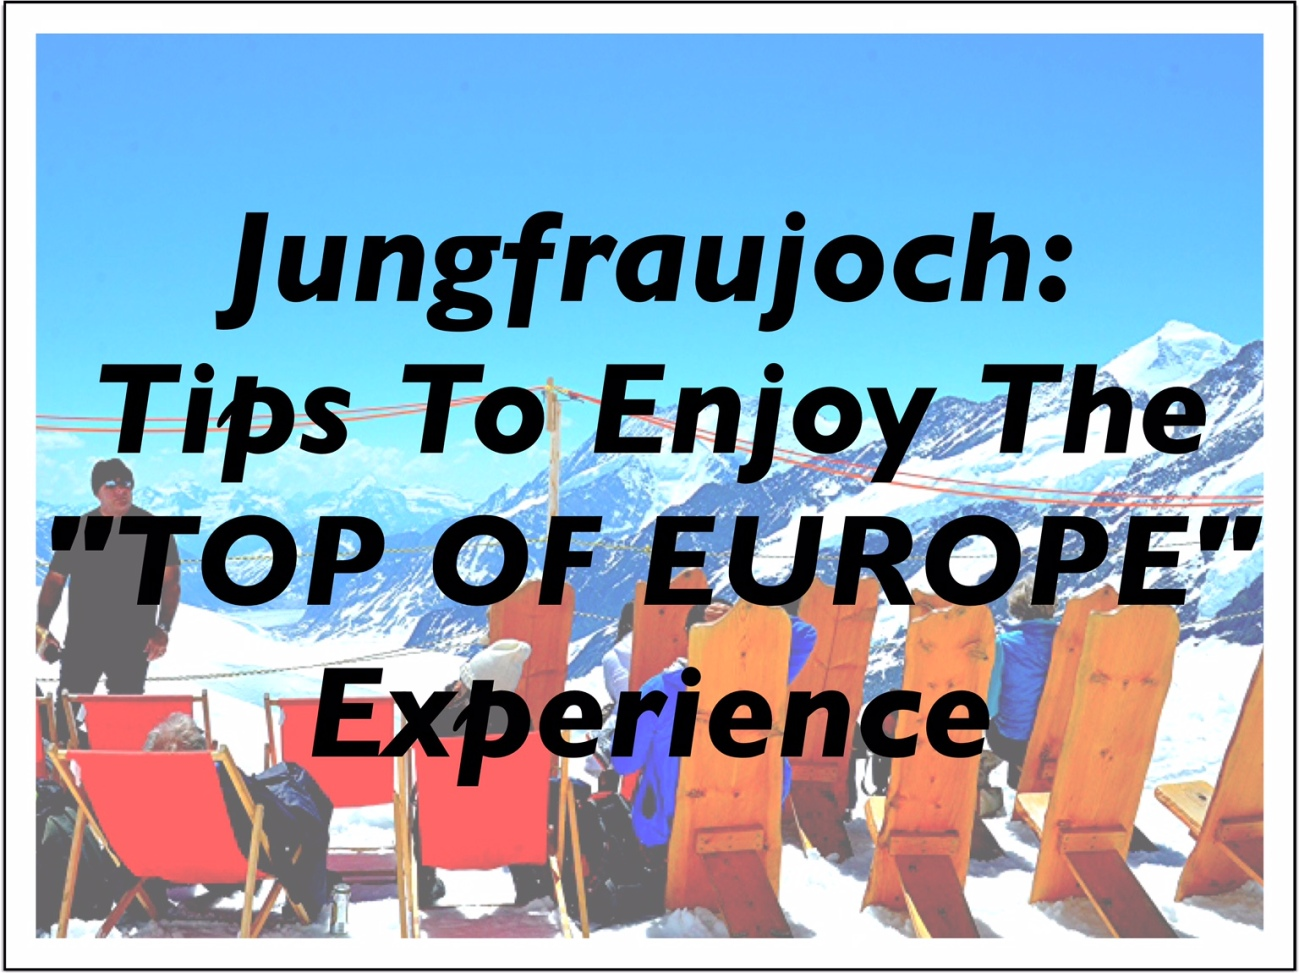 Jungfraujoch - Tips to Enjoy the Top of Europe Experience